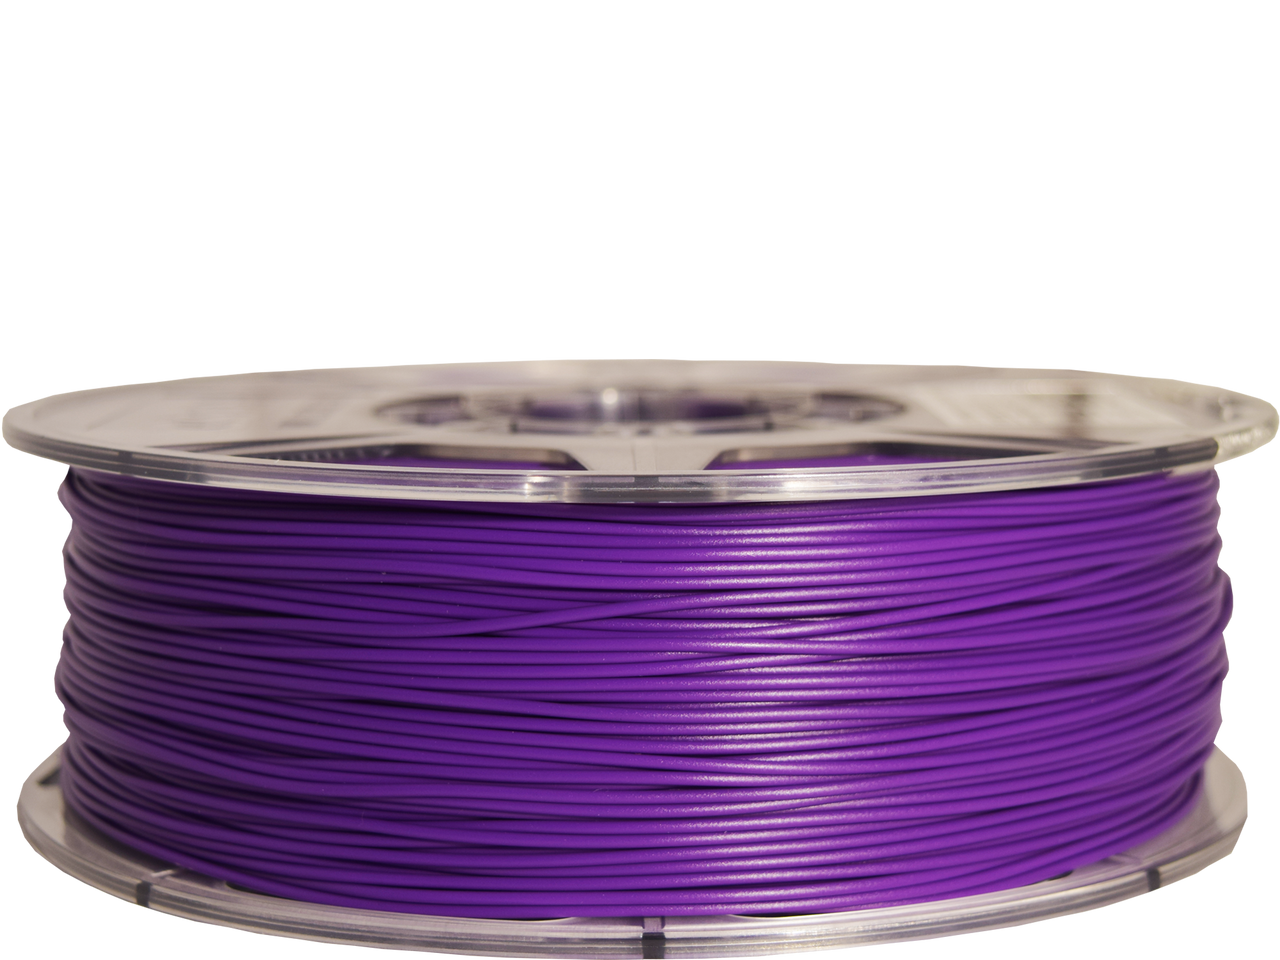 RePLAy 3D Virgin PLA+  Purple